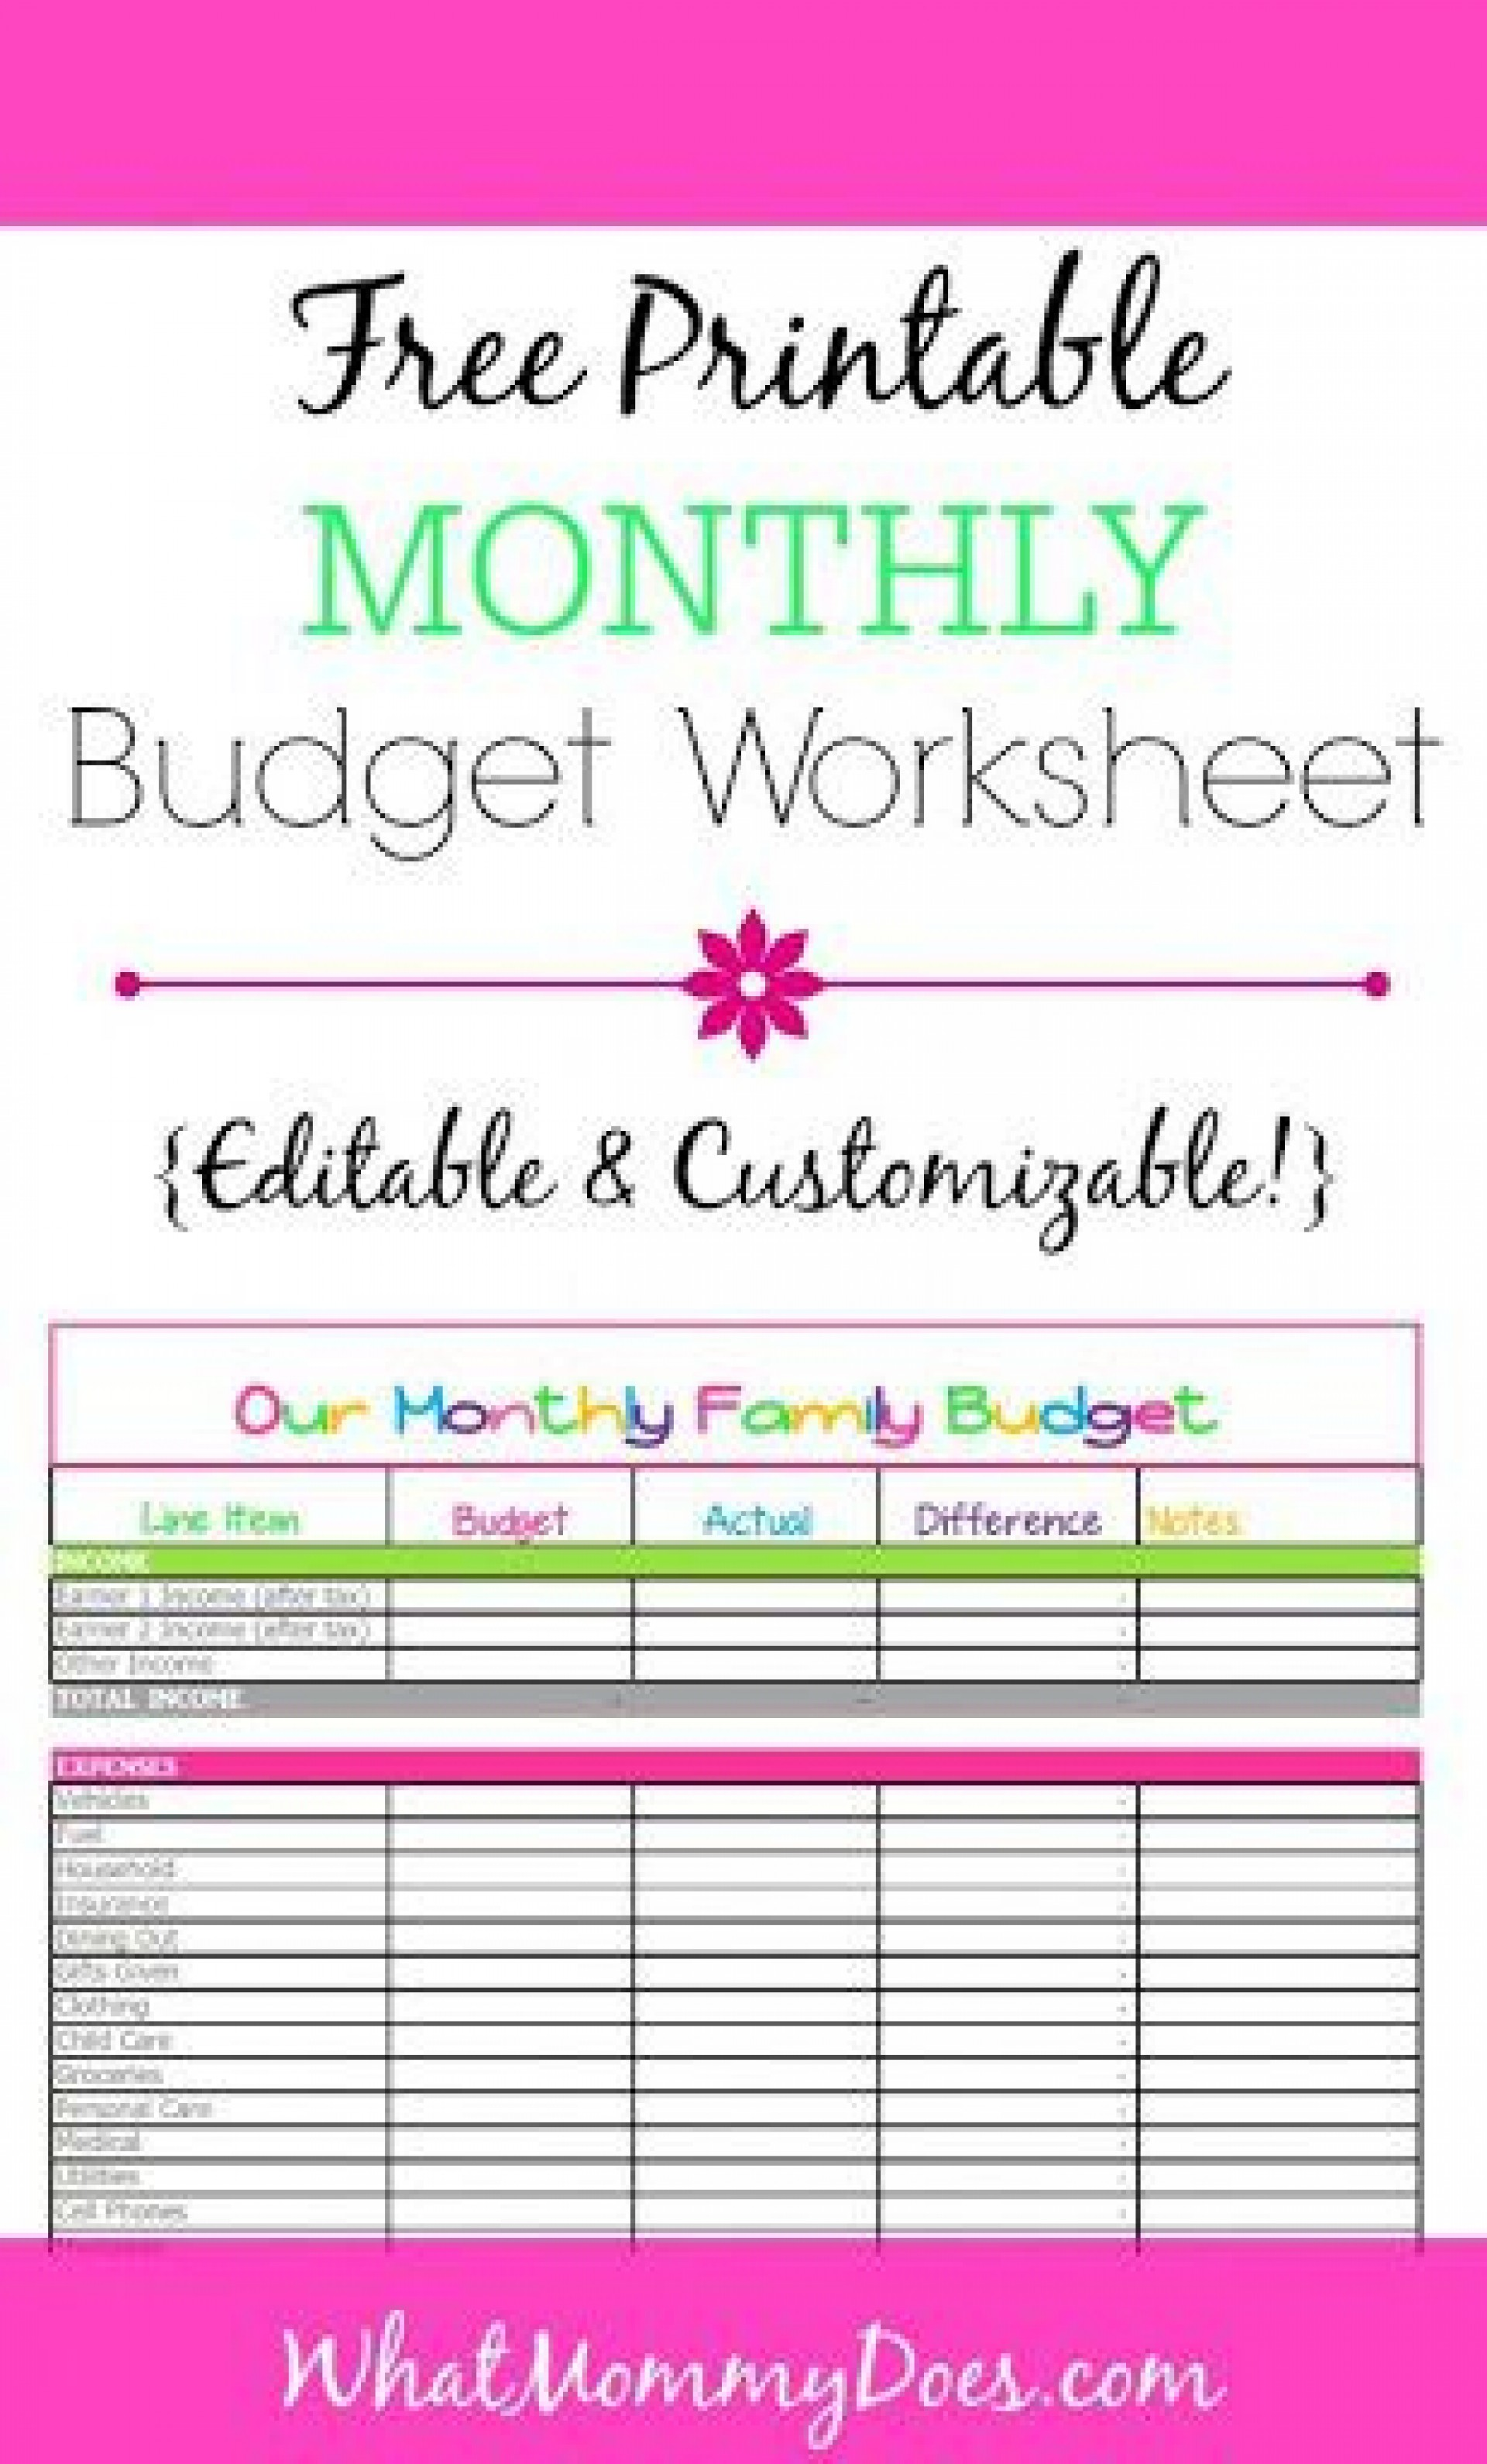 000 Striking Free Printable Monthly Budget Form Sample  Simple Template Blank Household Sheet1920